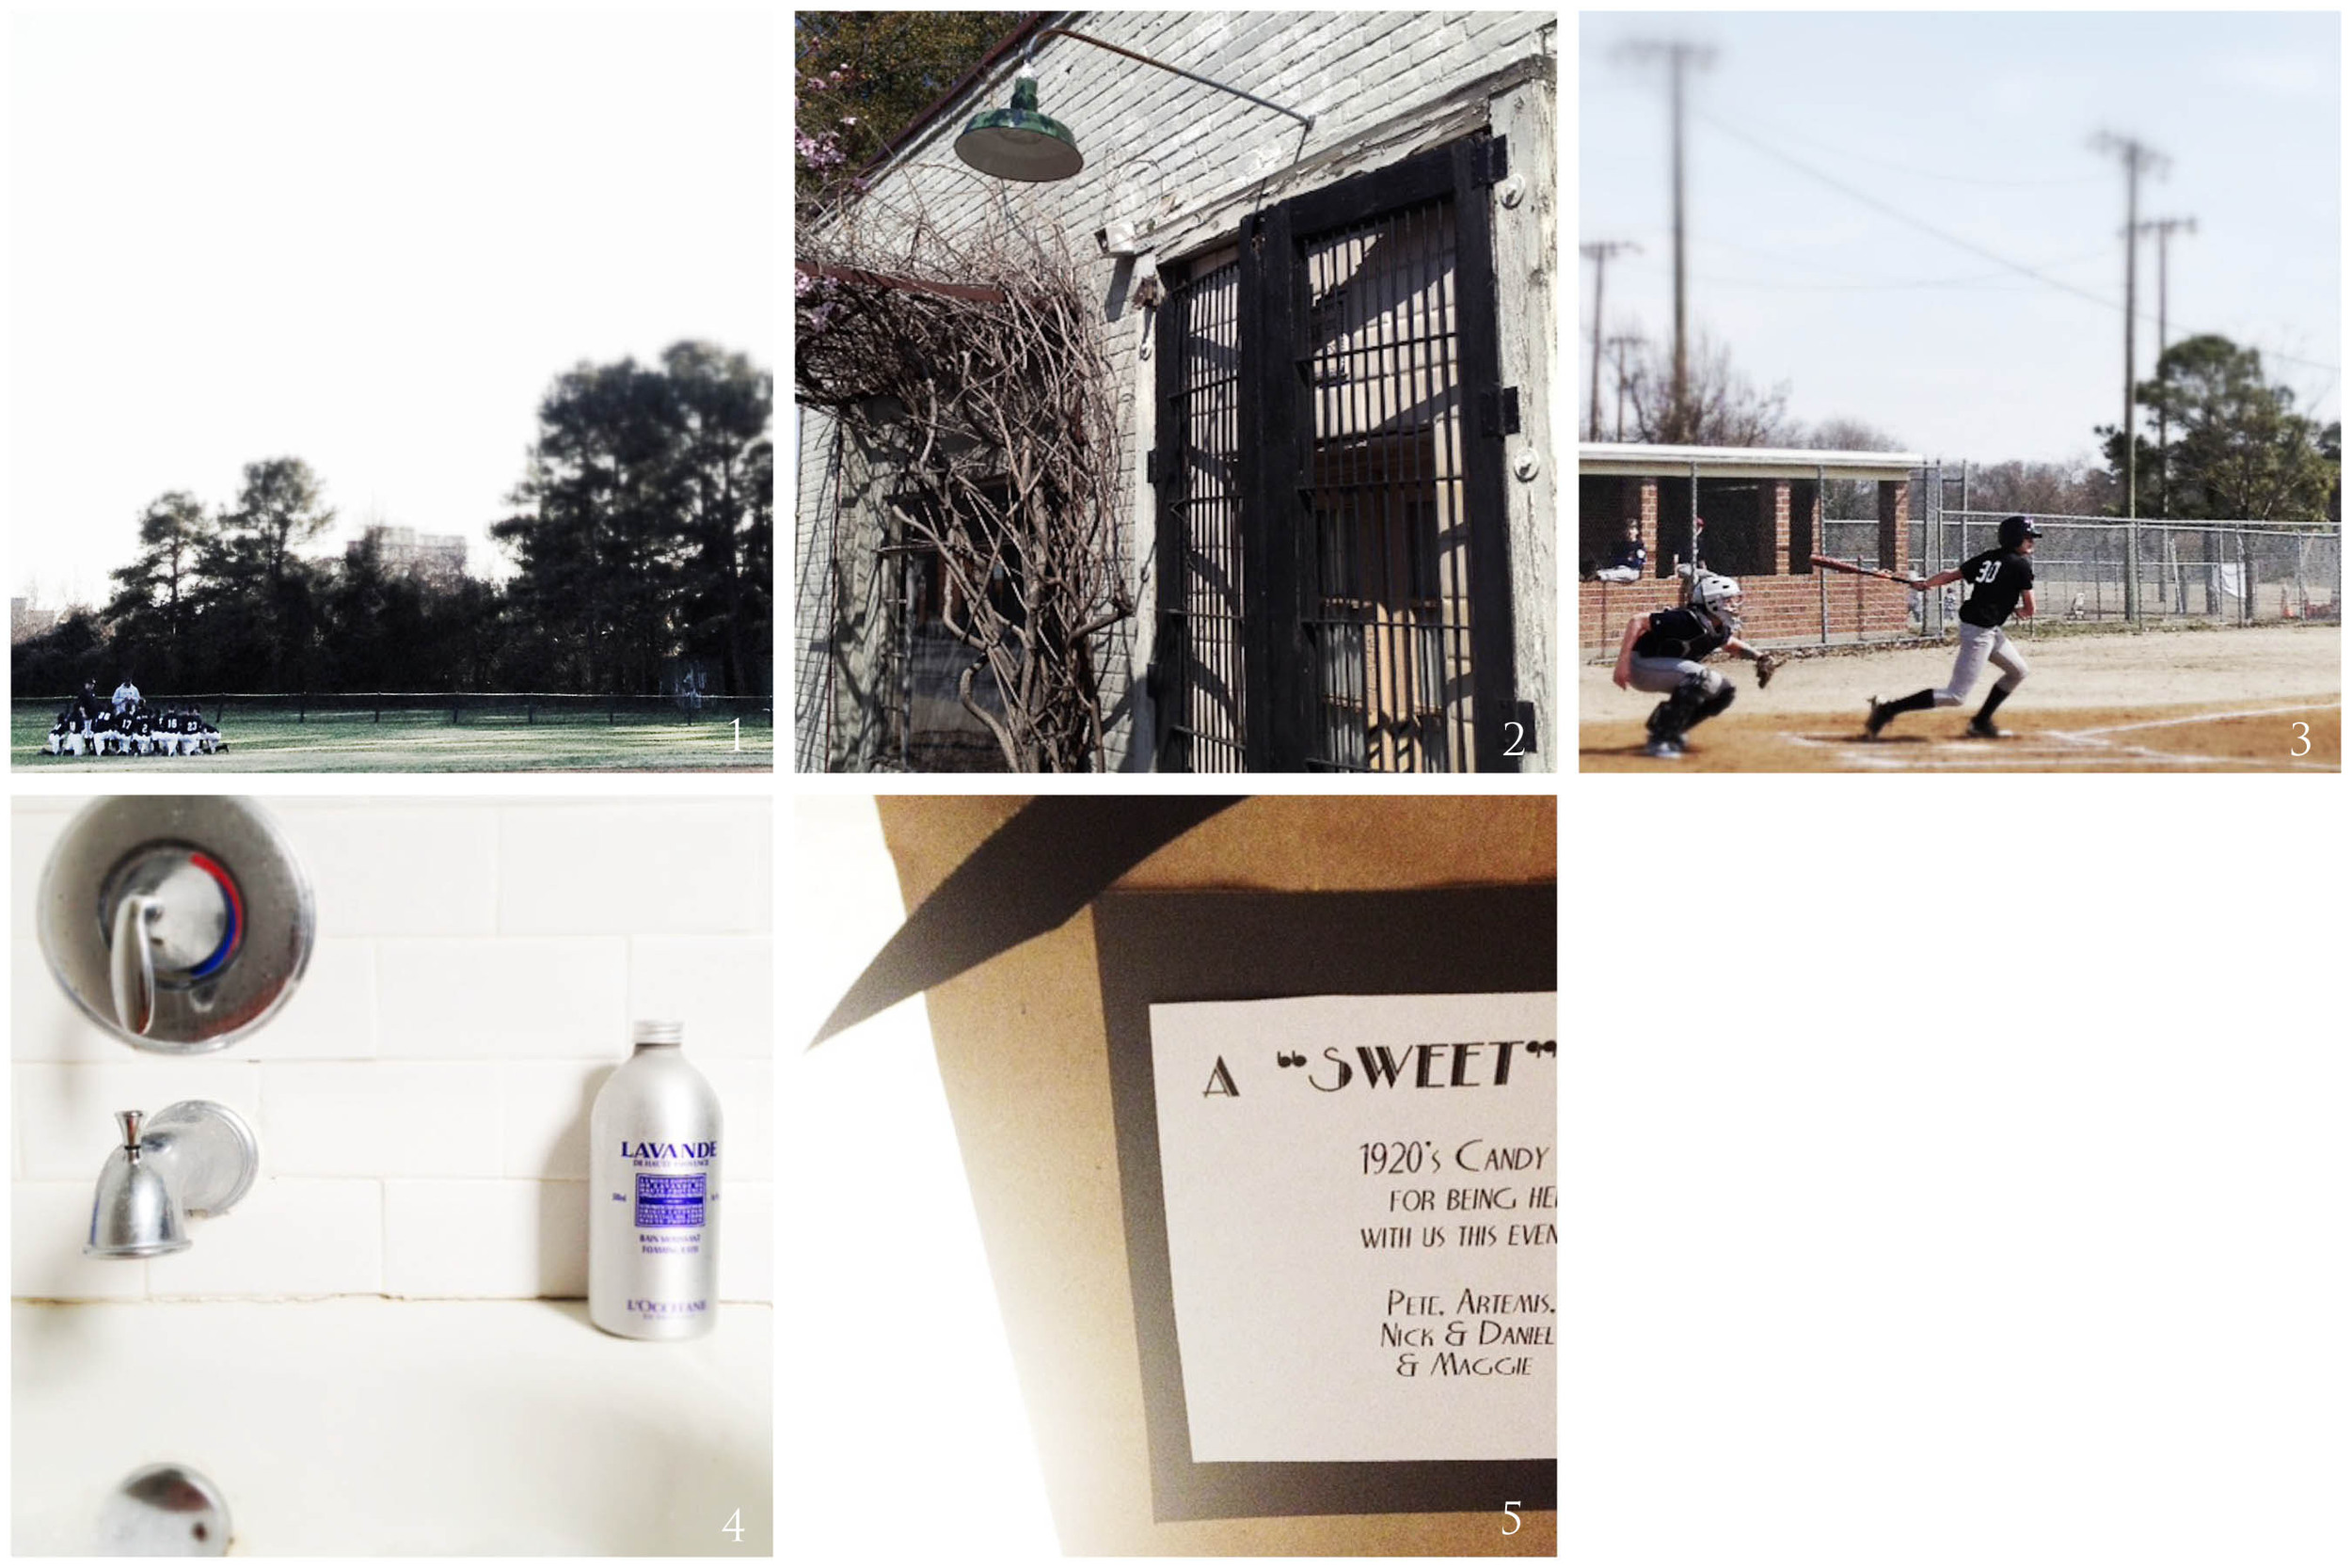 1. first game | 2. photo walk | 3. how our saturdays look now | 4. medicinal | 5. sweet ending